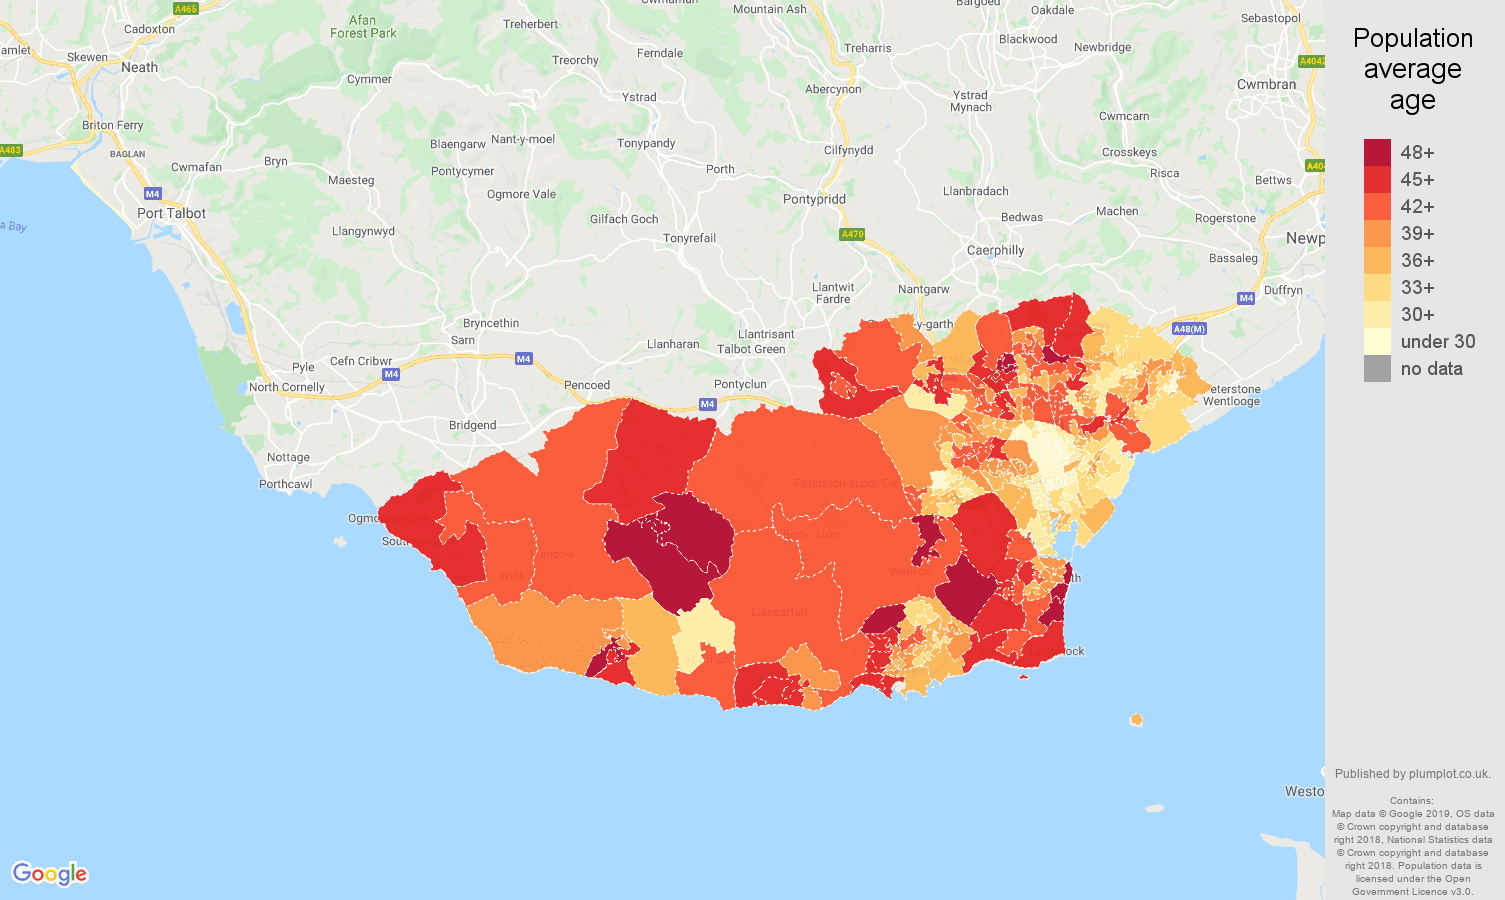 South Glamorgan population average age map